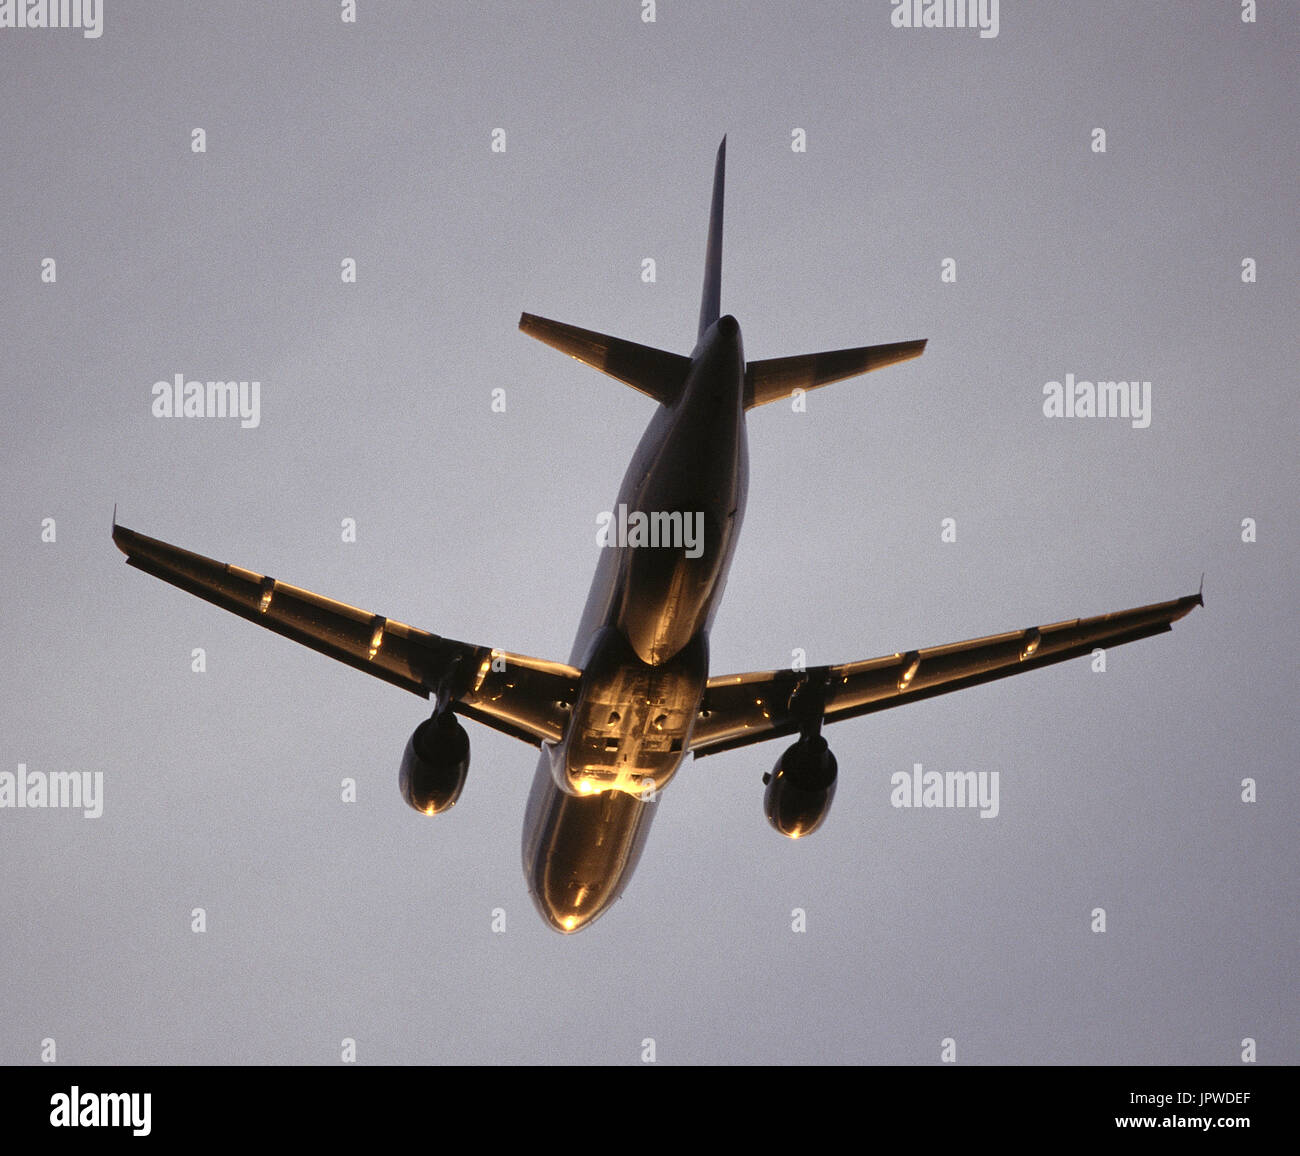 Airbus A320 flying enroute with golden light reflecting off of the fuselage underside - Stock Image